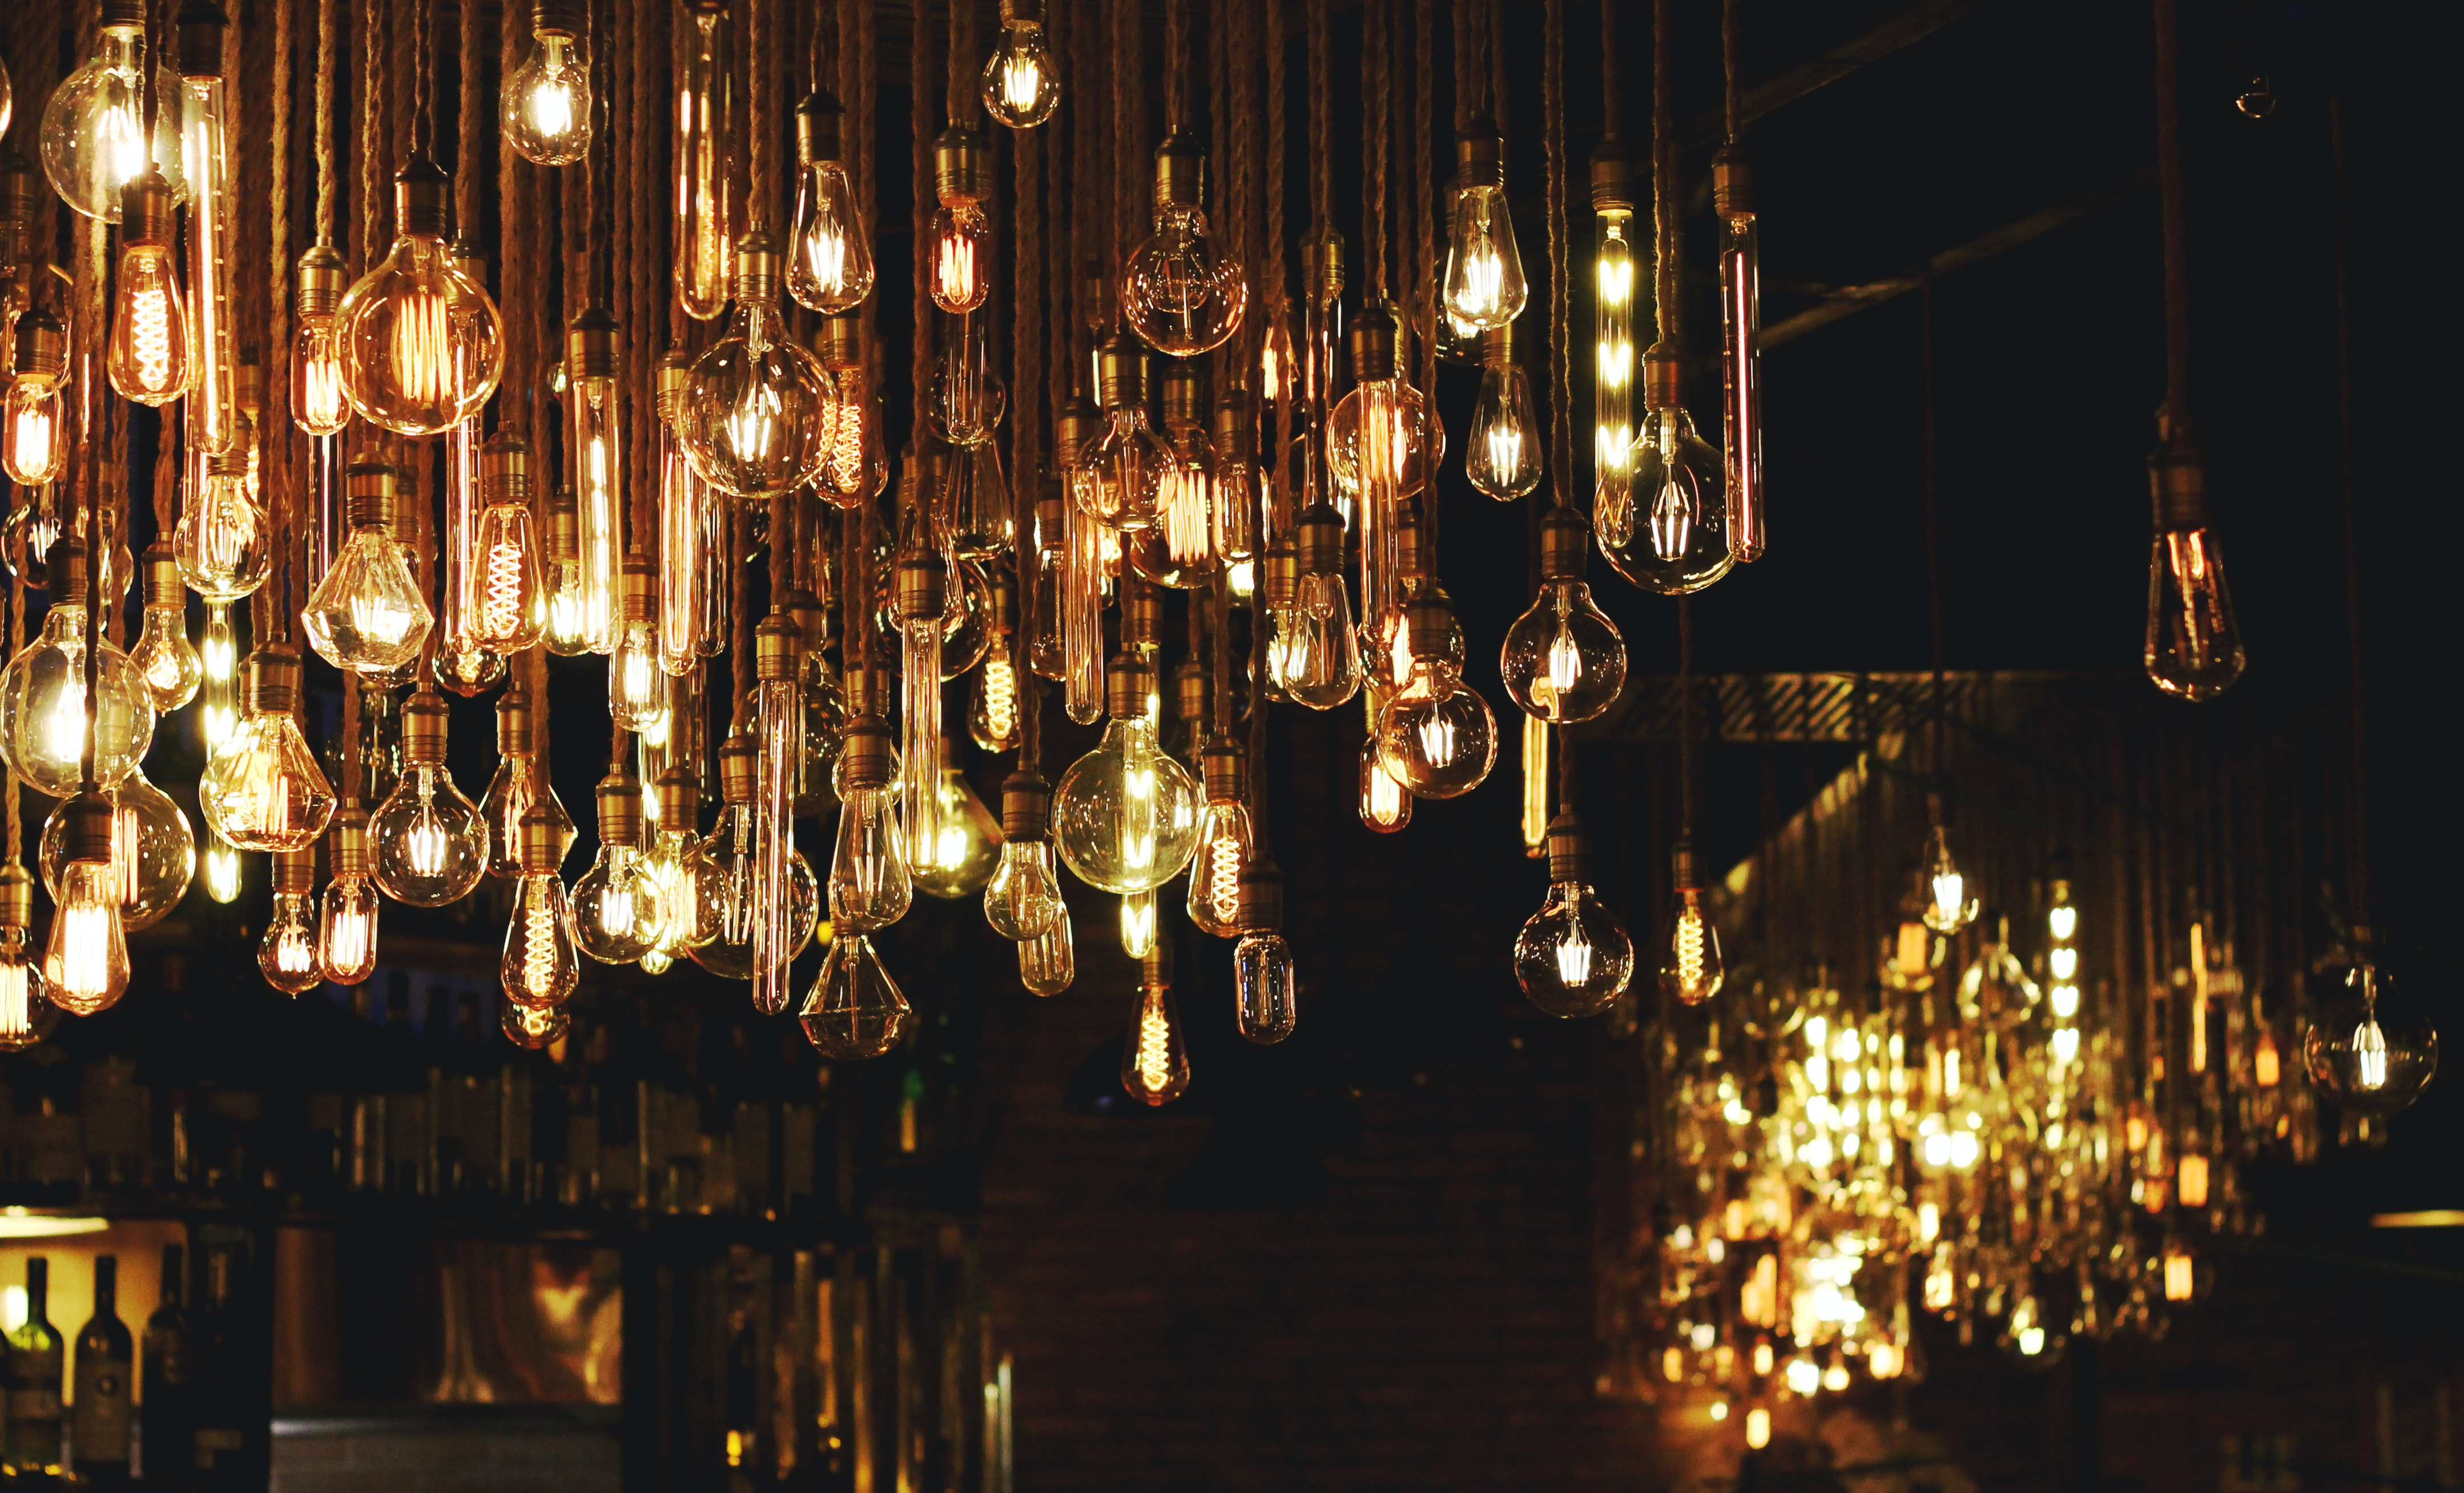 room full of pendant lamps